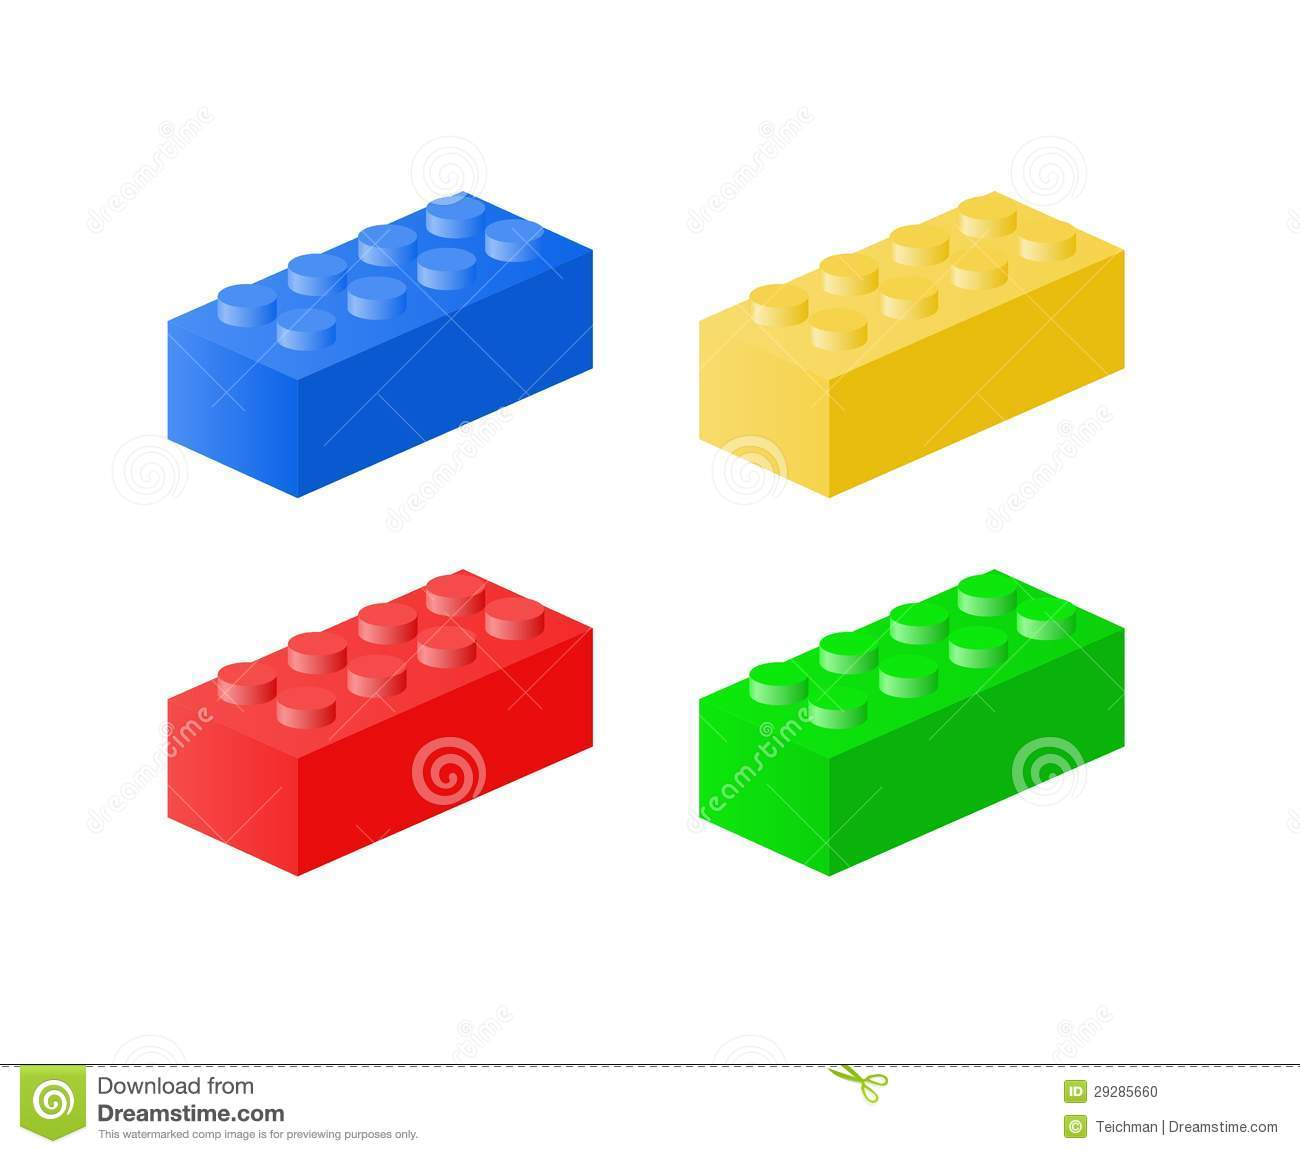 lego brick side view clipart - photo #30